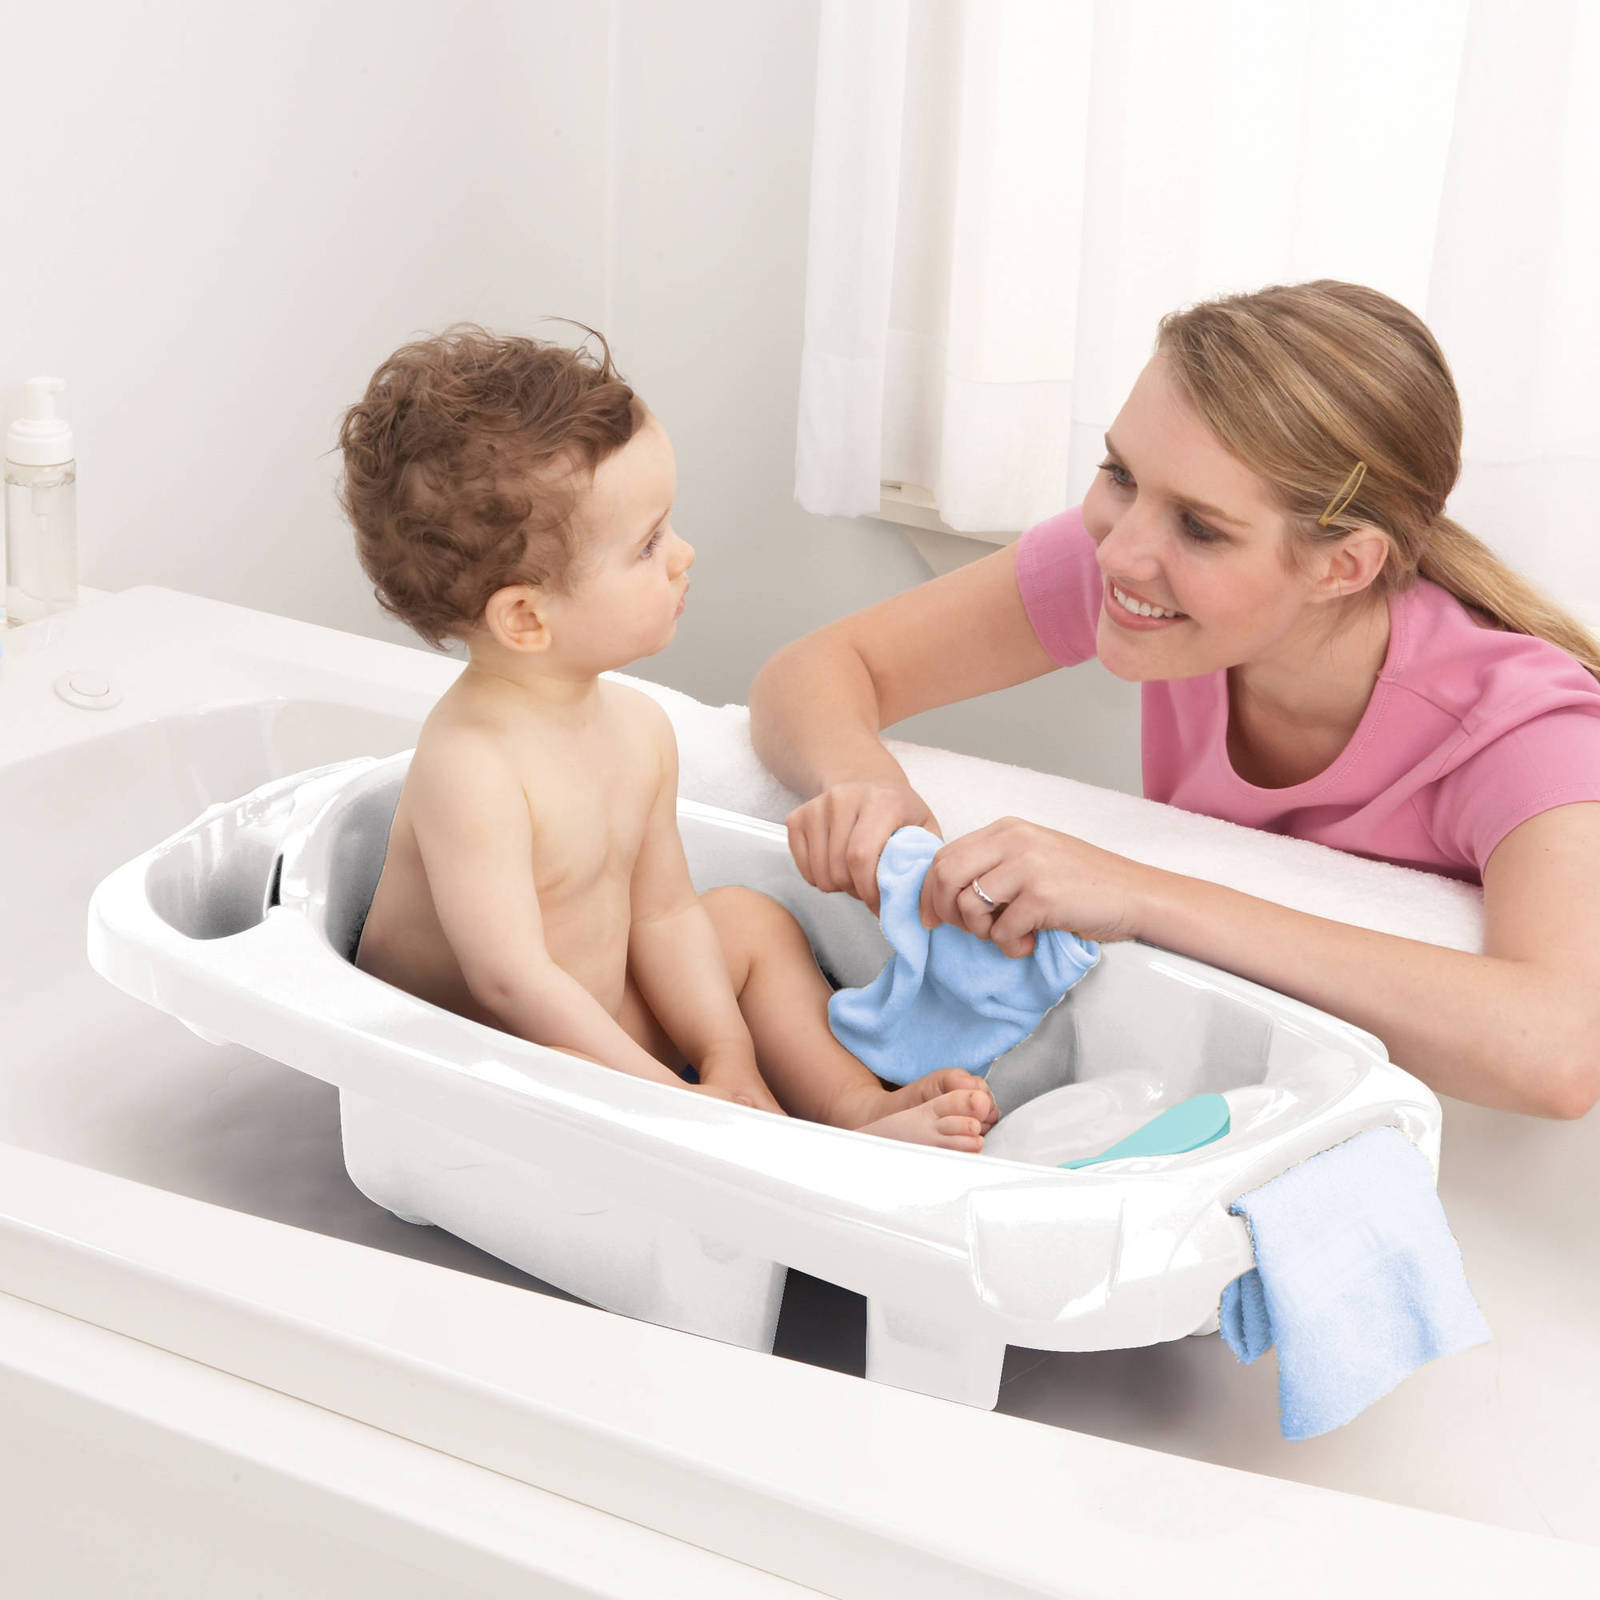 baby bath tub 1 year newborn infant child toddler shower new born safety baby shower bath bed end 11 7 2017 7 28 pm